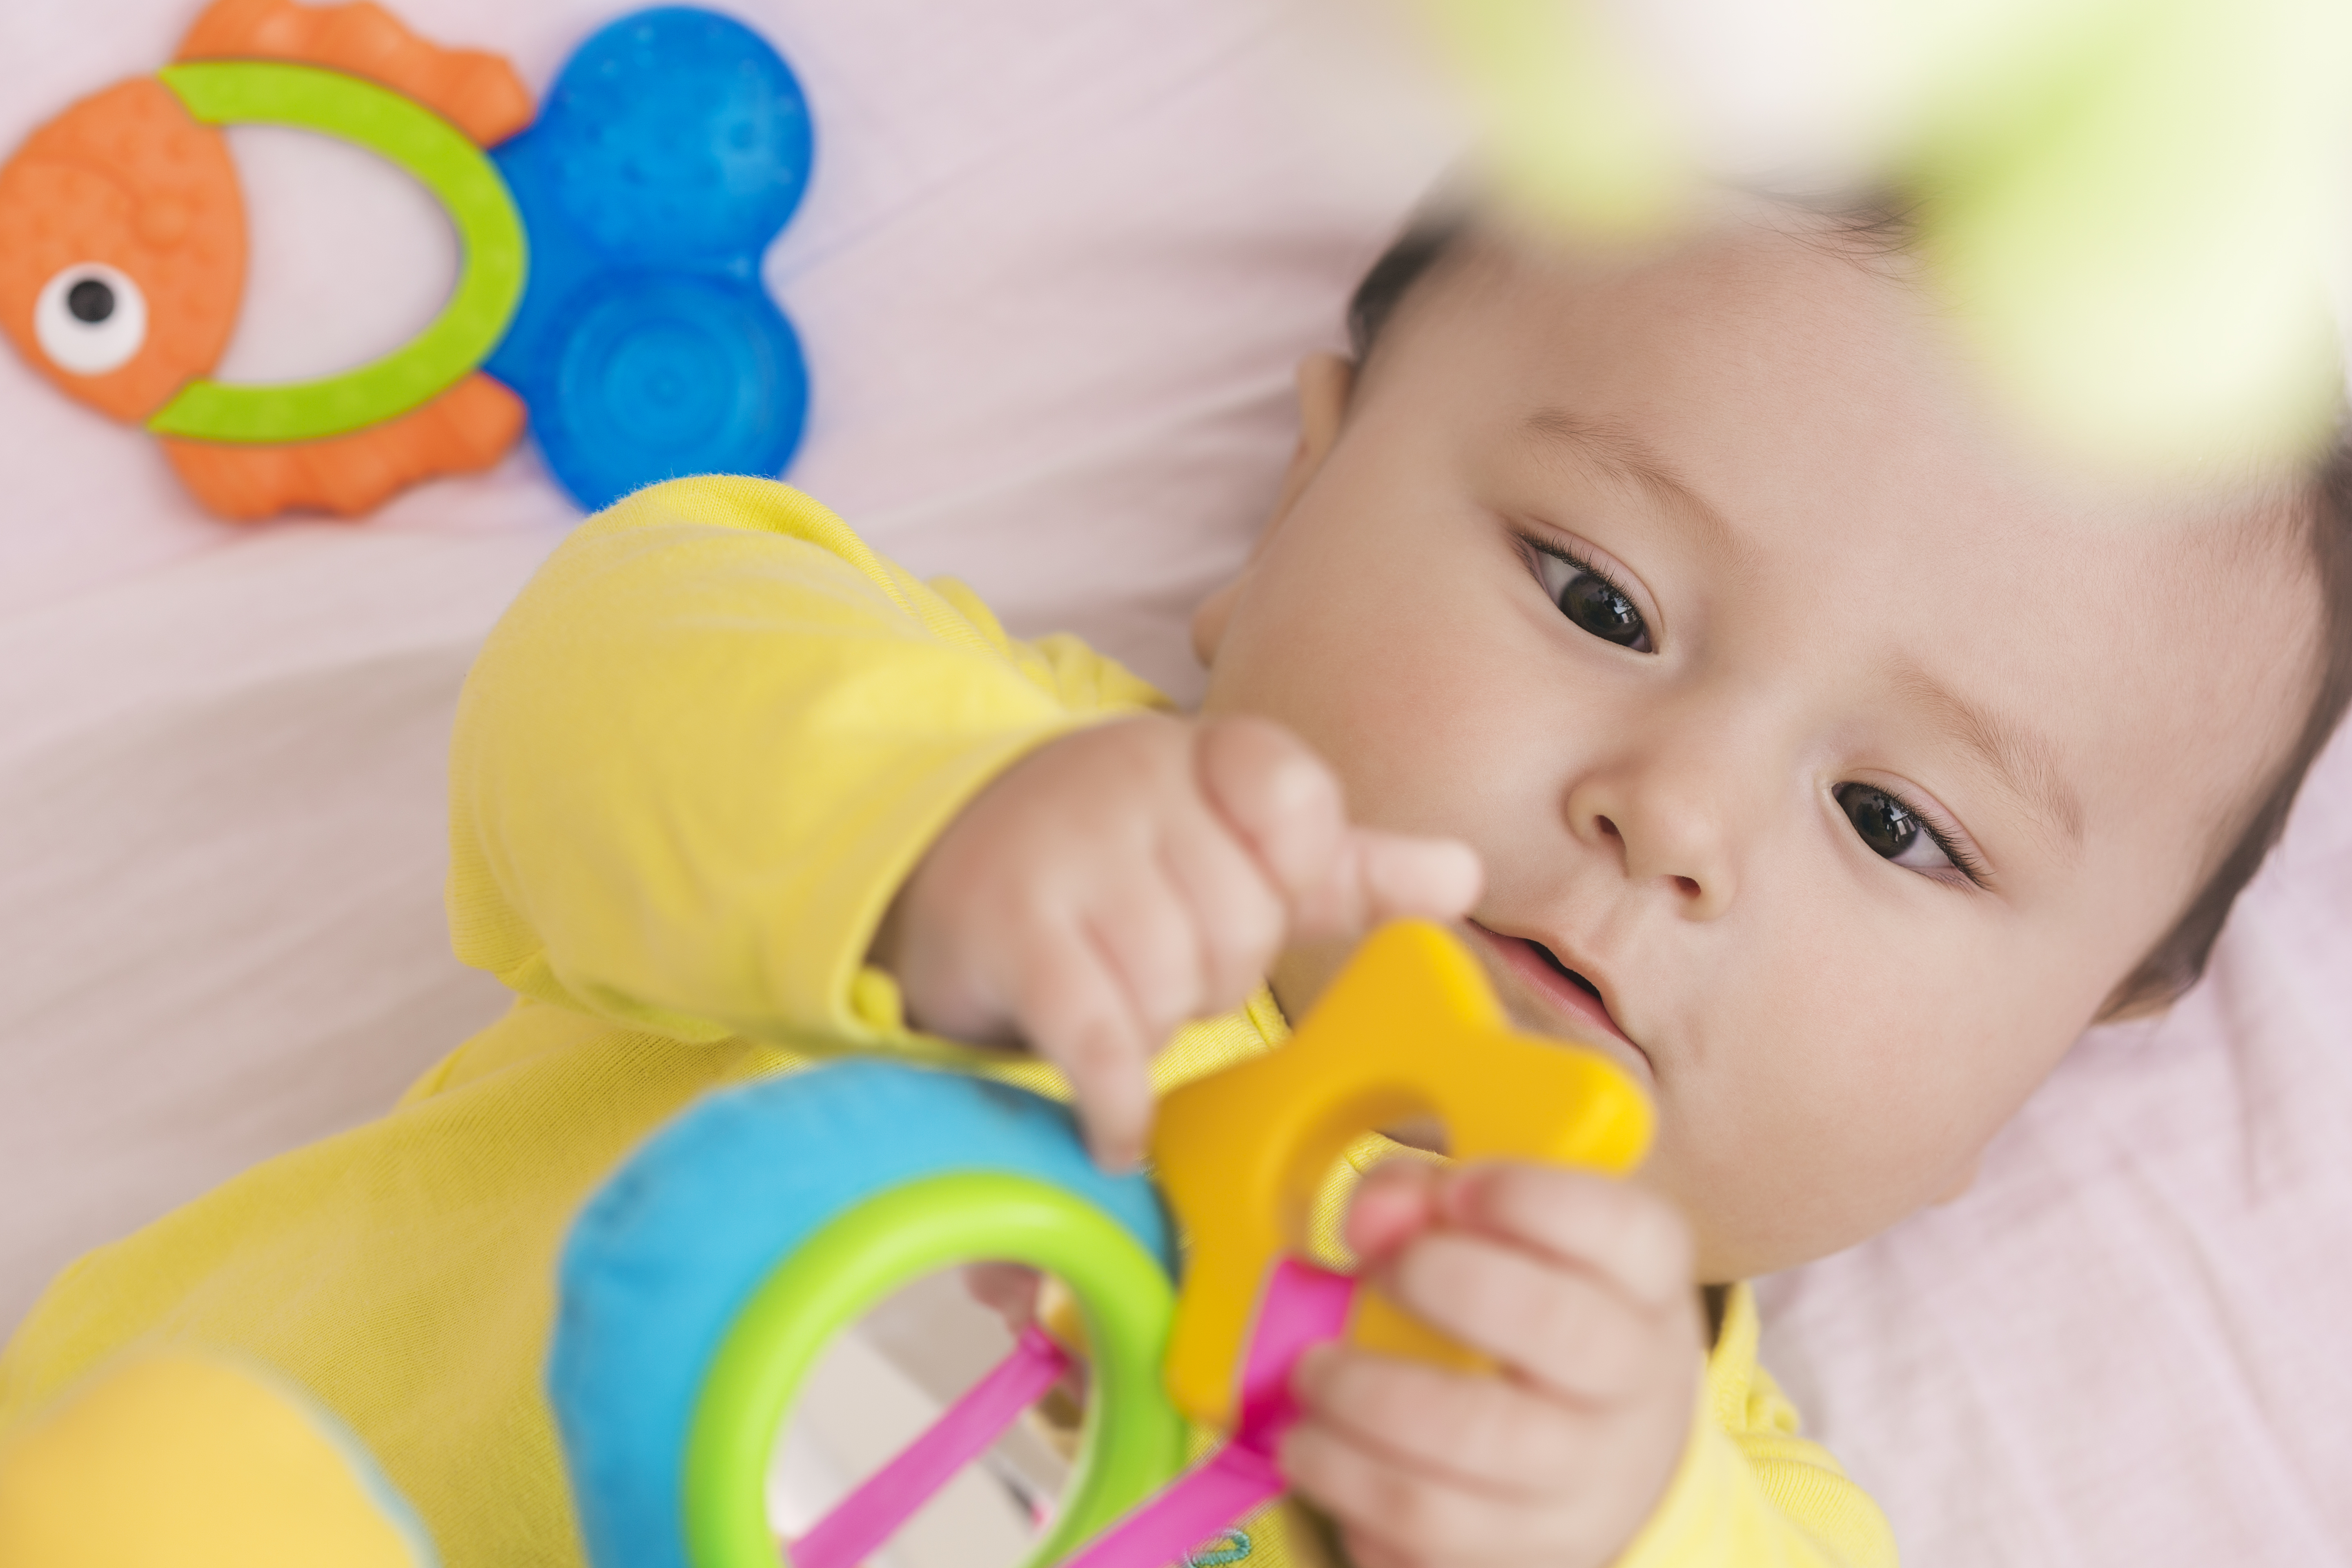 Happy baby lying in his crib looking at toy in his hands intently